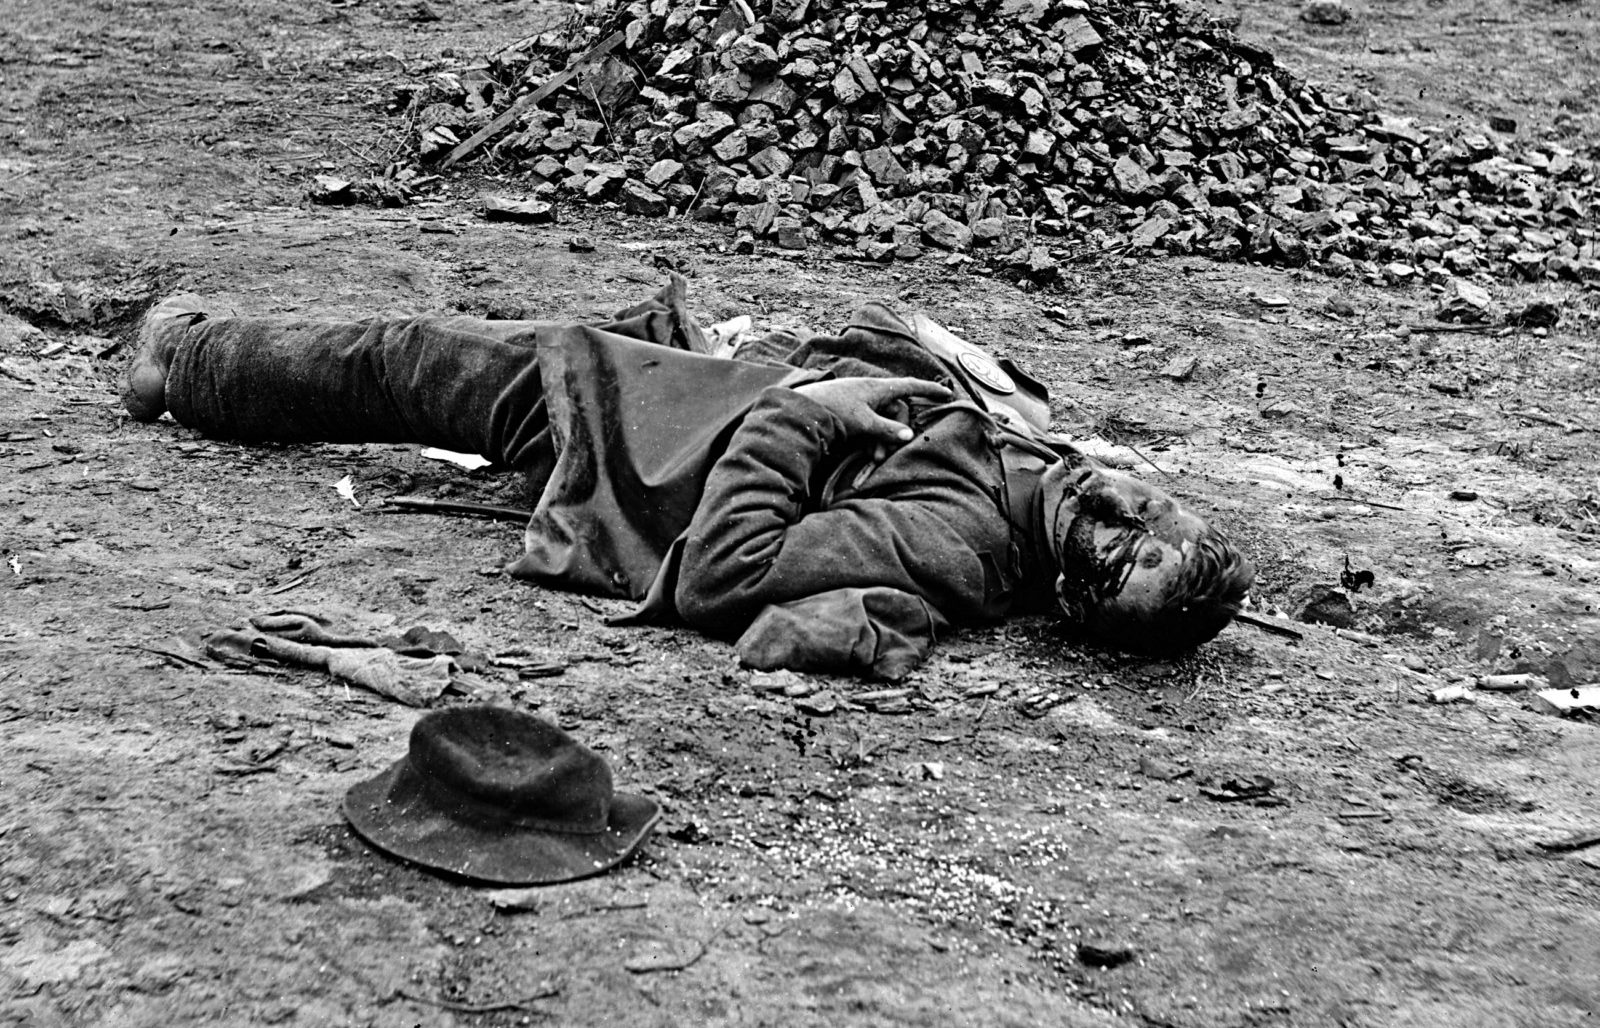 Dead Soldier American Civil War